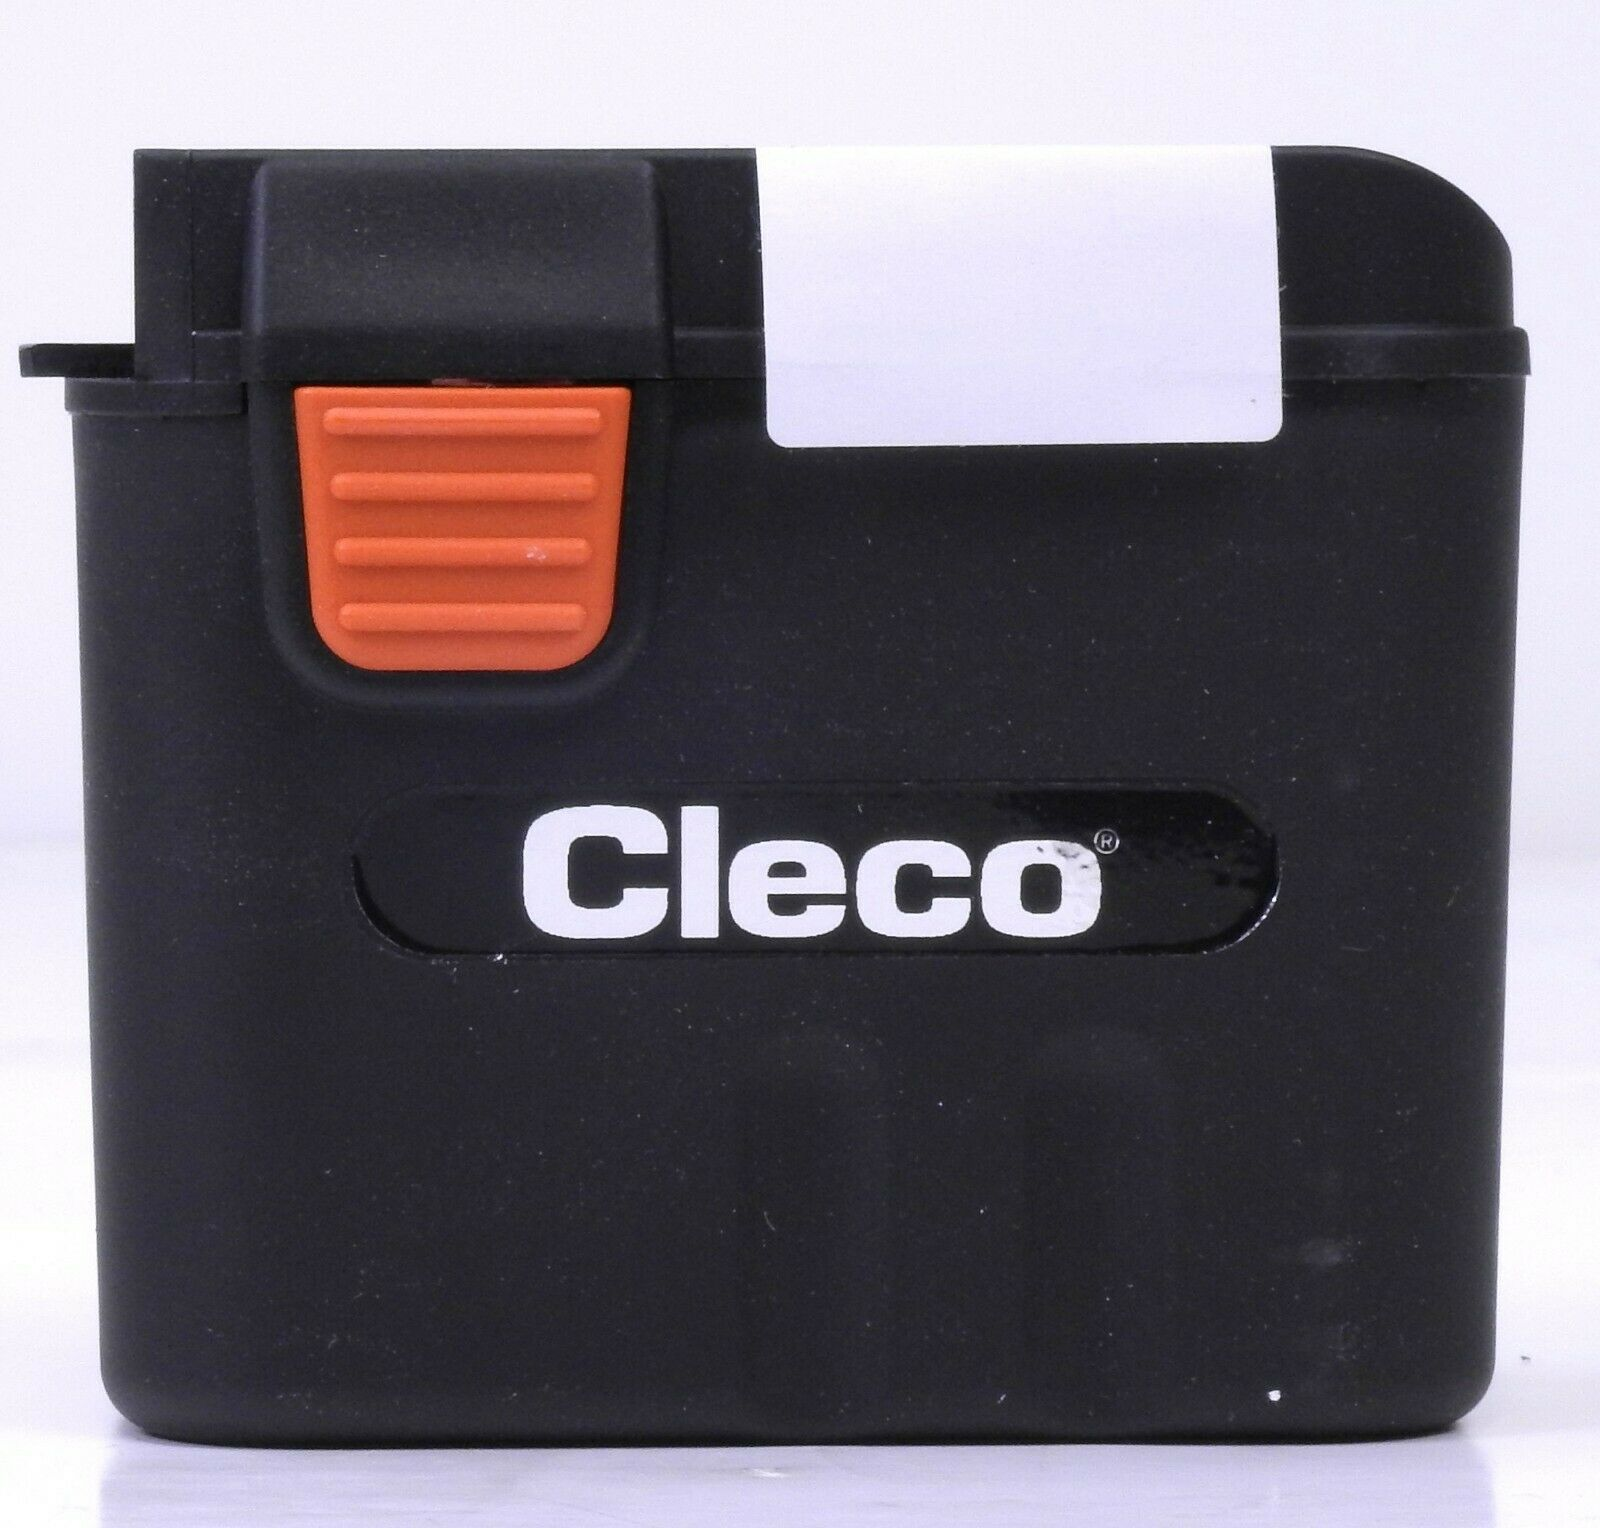 Cleco 935377 Li-Ion Rechargeable Battery